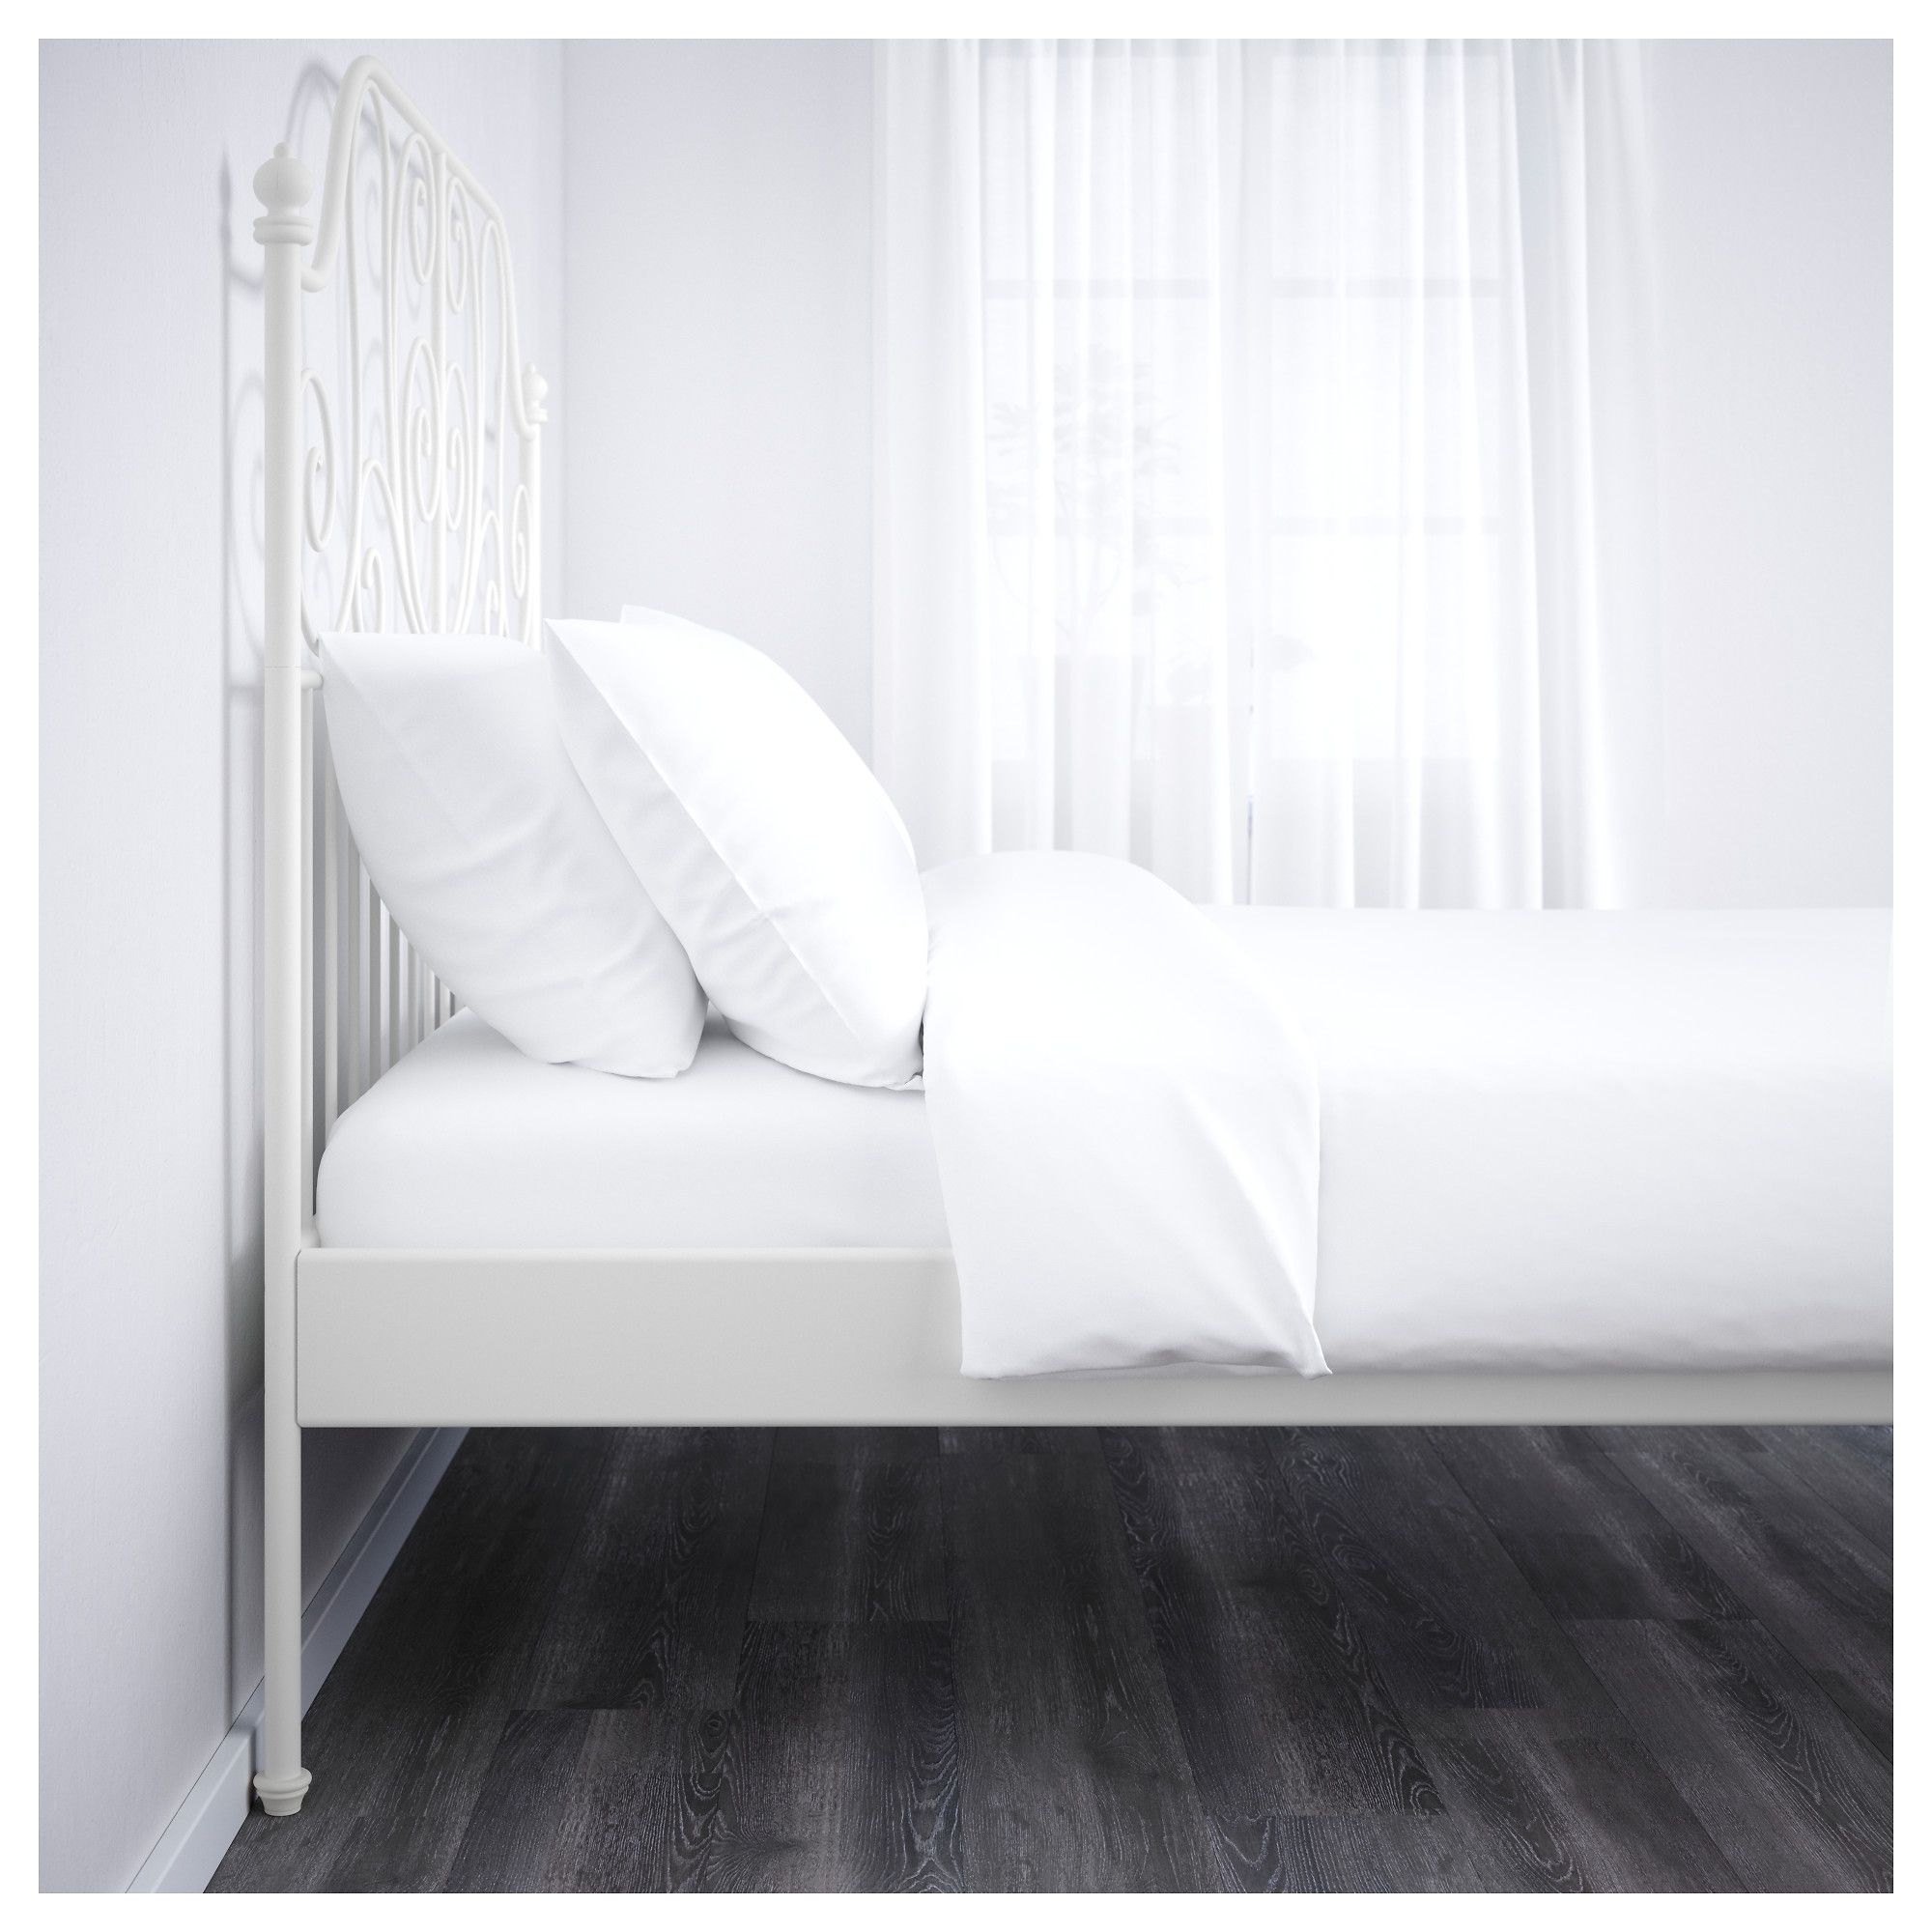 IKEA - LEIRVIK Bed frame white, Luröy | Products | Pinterest